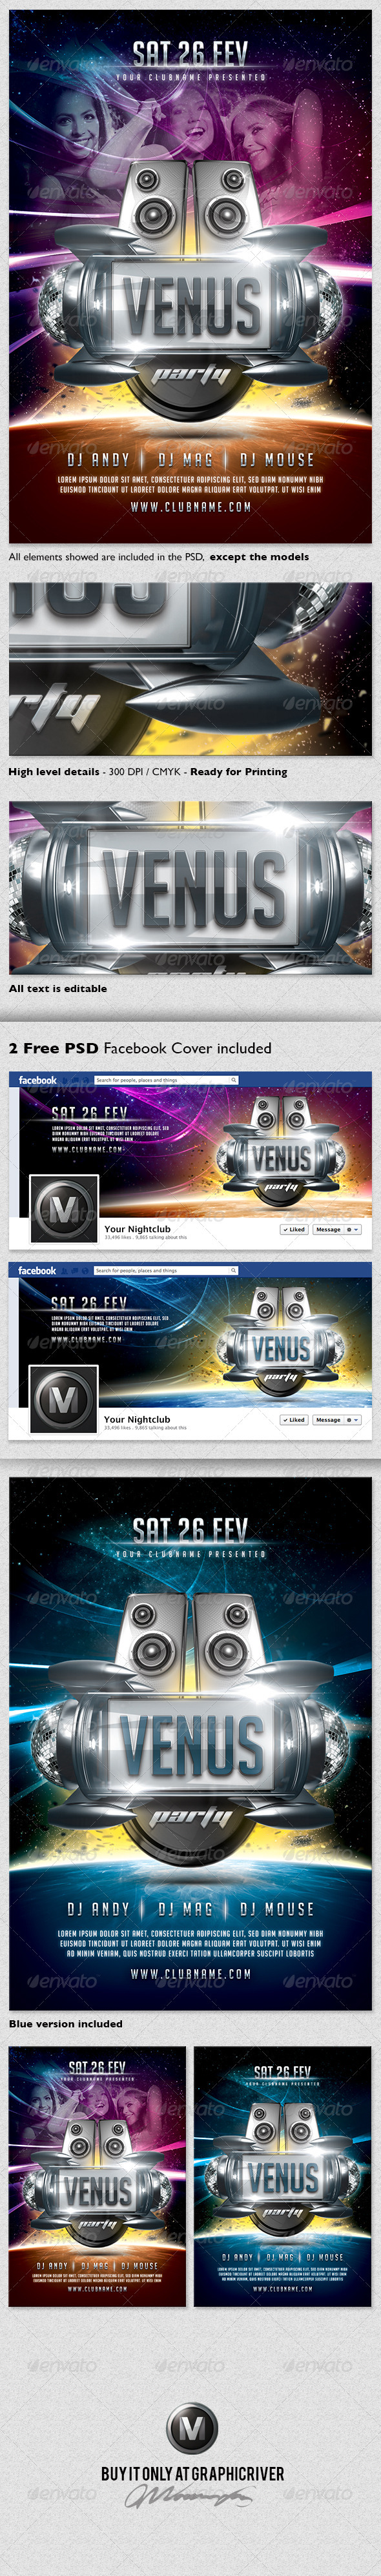 Venus Party Flyer Template + Facebook Timeline - Events Flyers